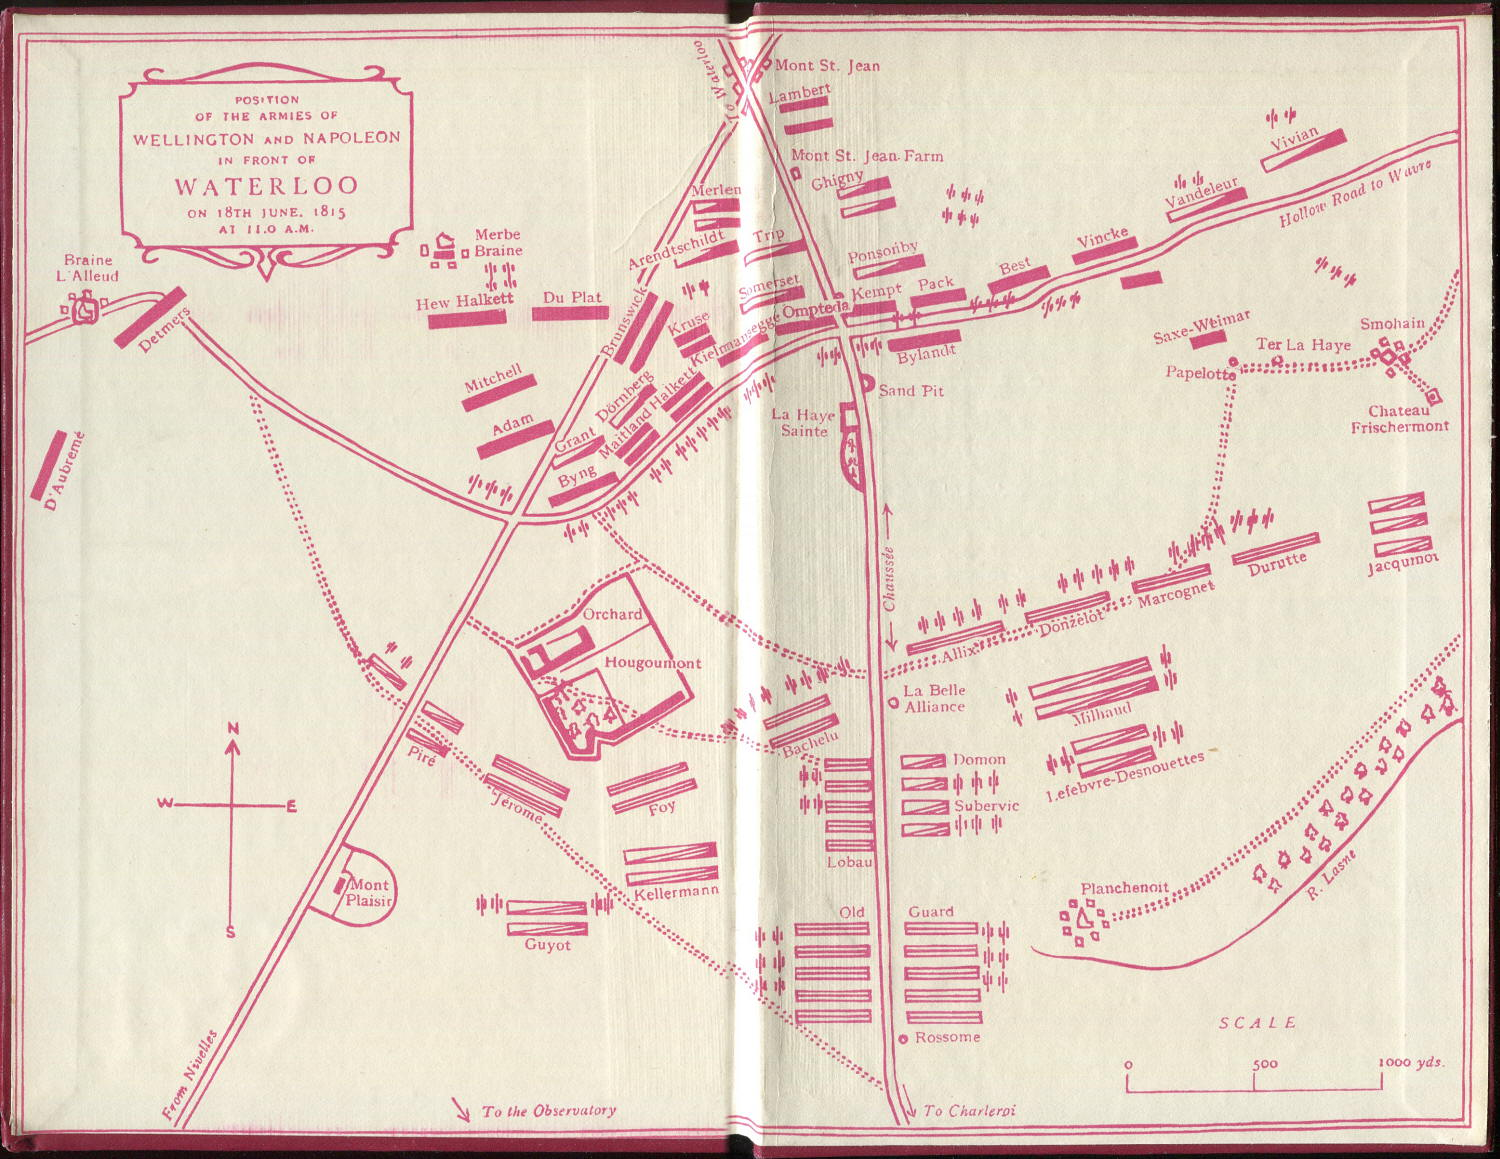 Endpaper map of Waterloo Battlefield